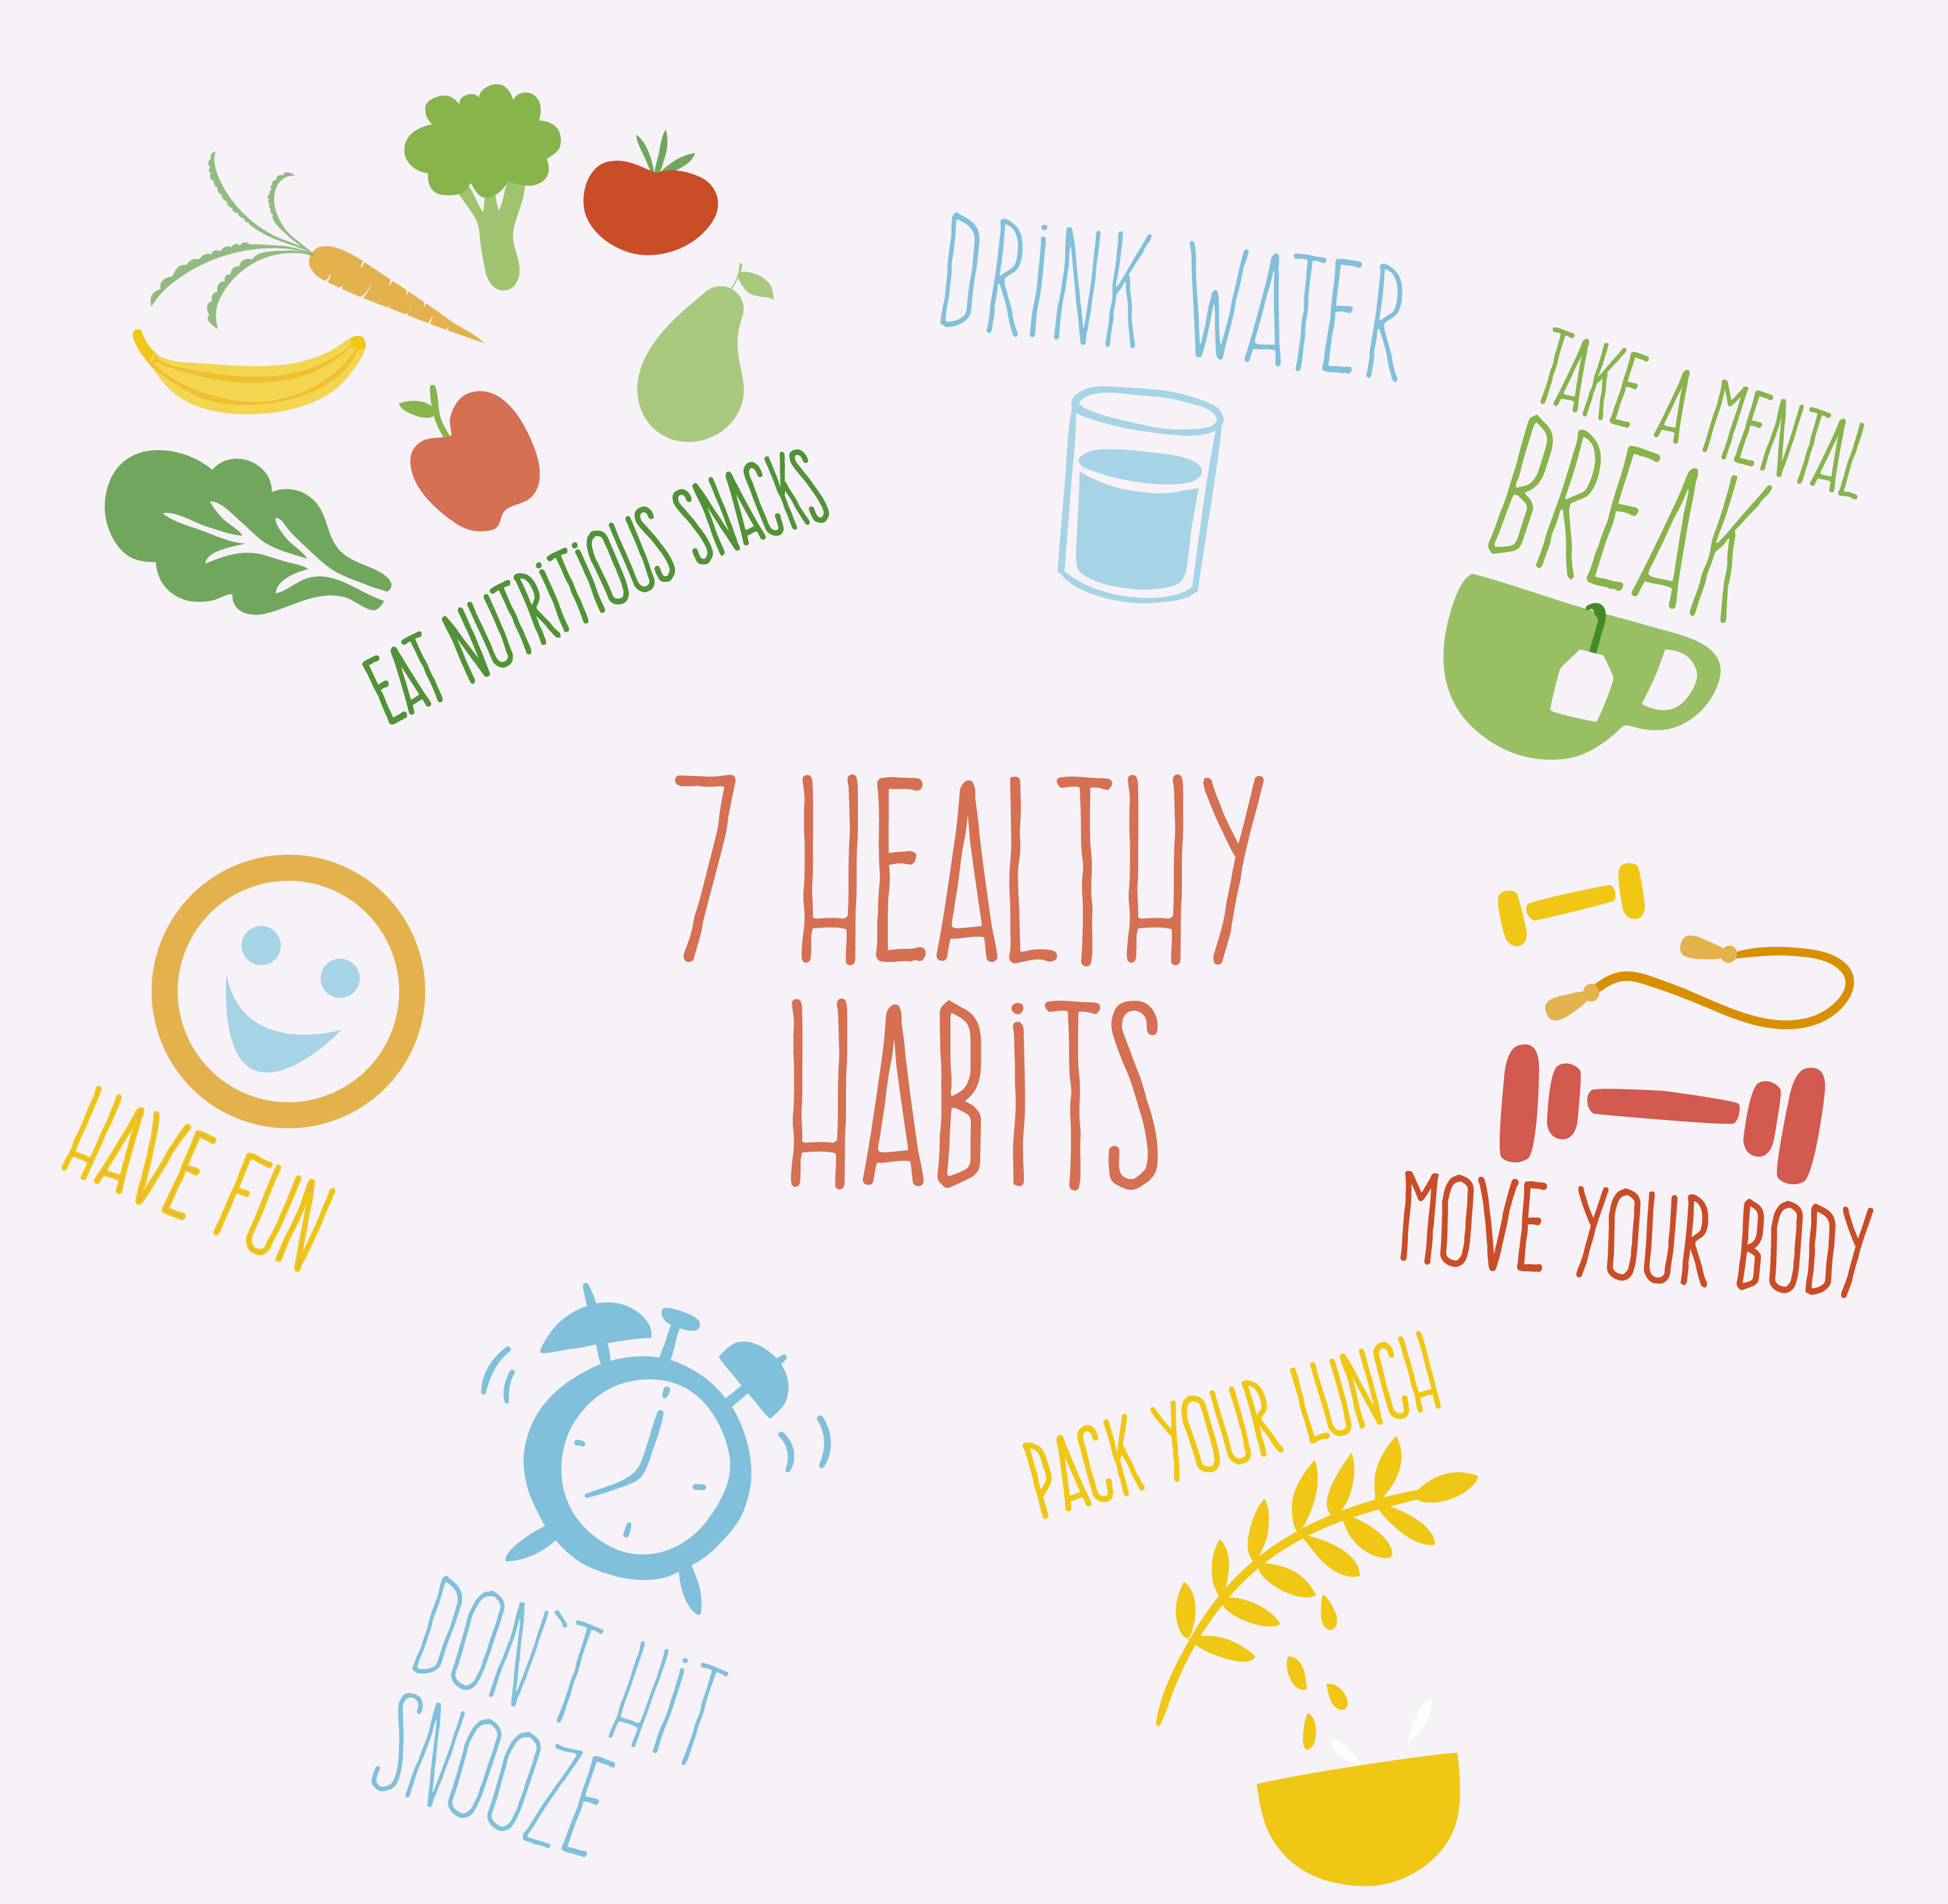 7 Healthy Habits For A More Productive Work Day